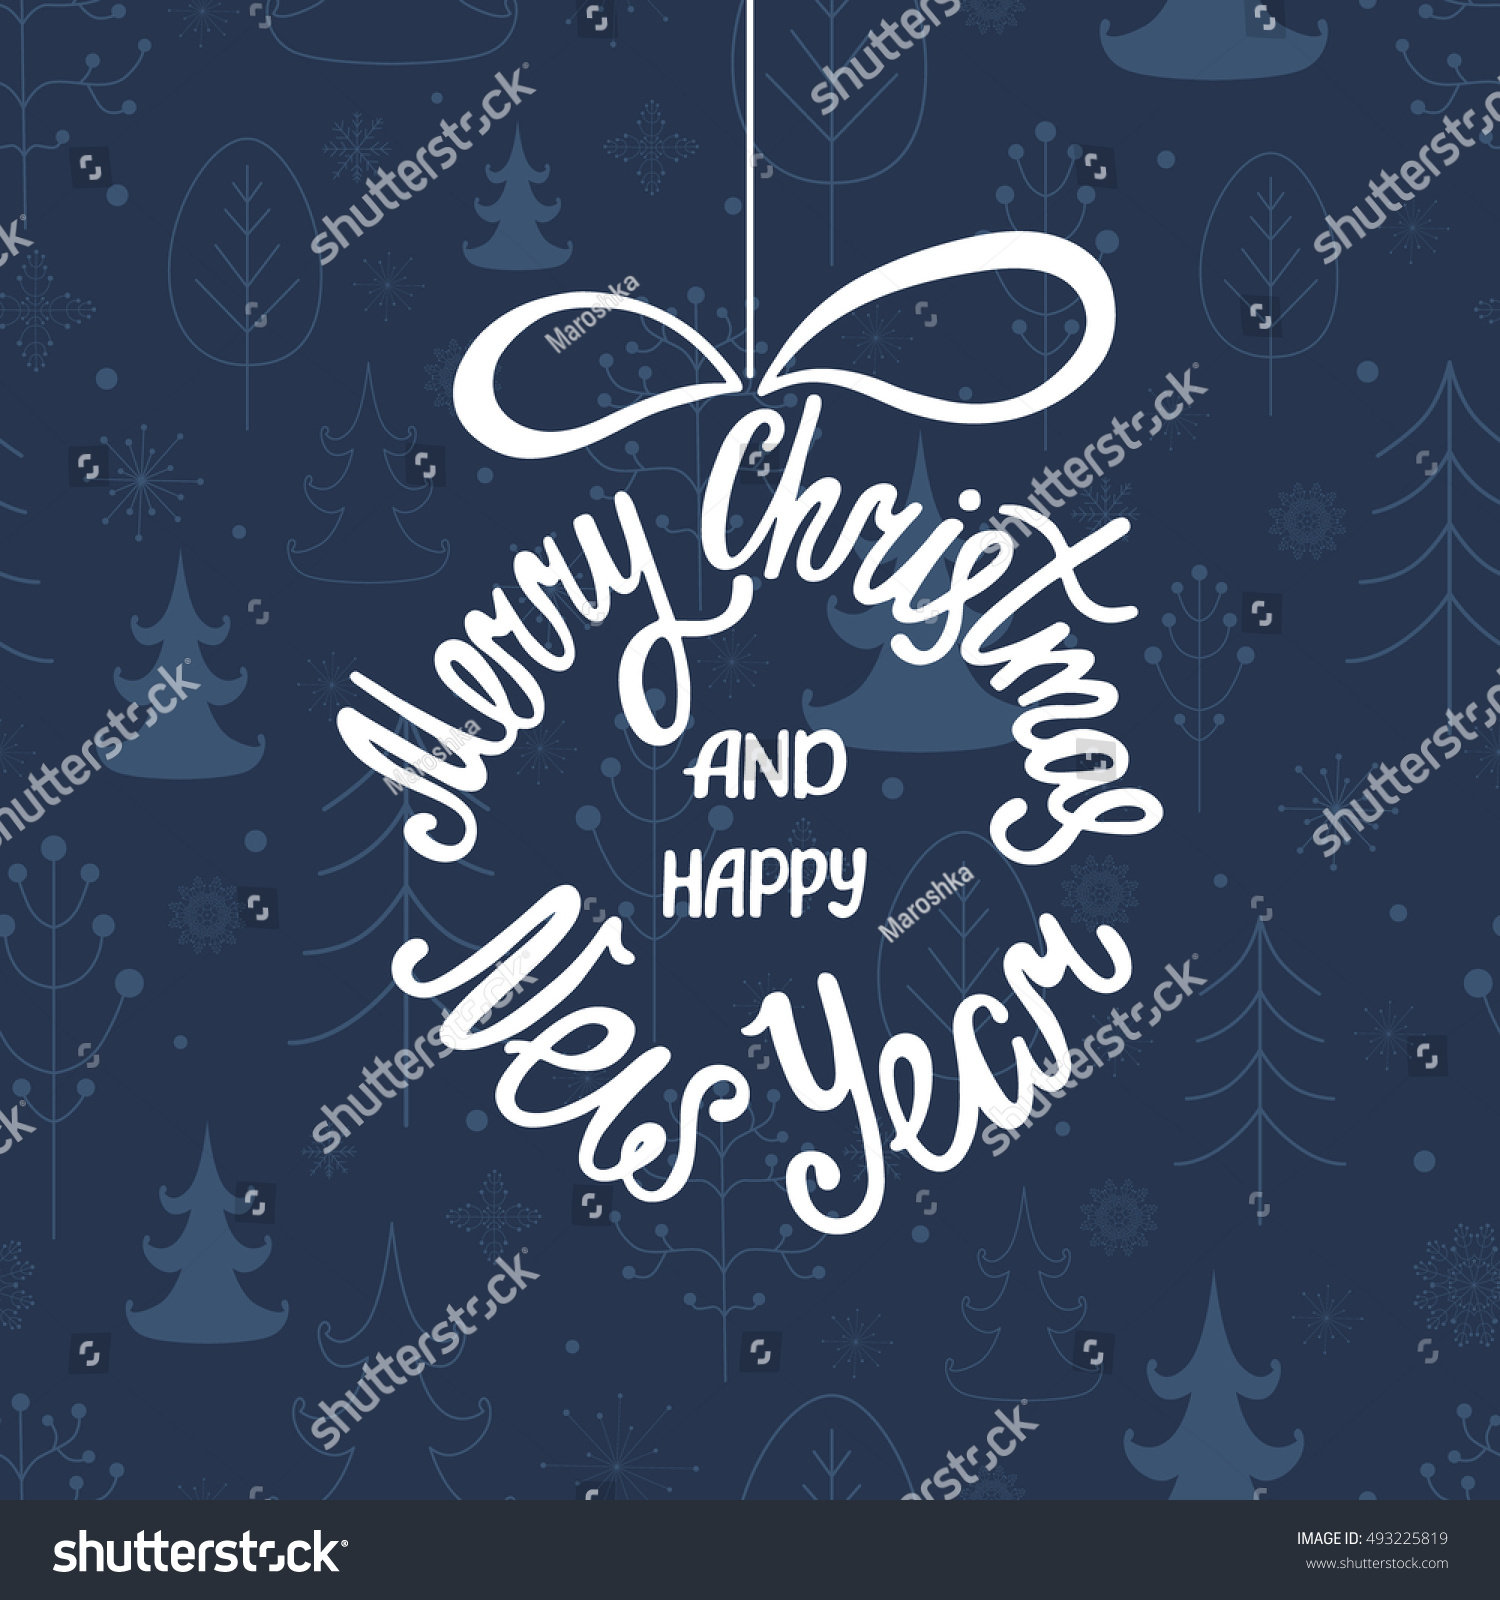 Merry christmas happy new year handdrawn stock vector 2018 handdrawn inscription for greeting card or invitation round stopboris Image collections